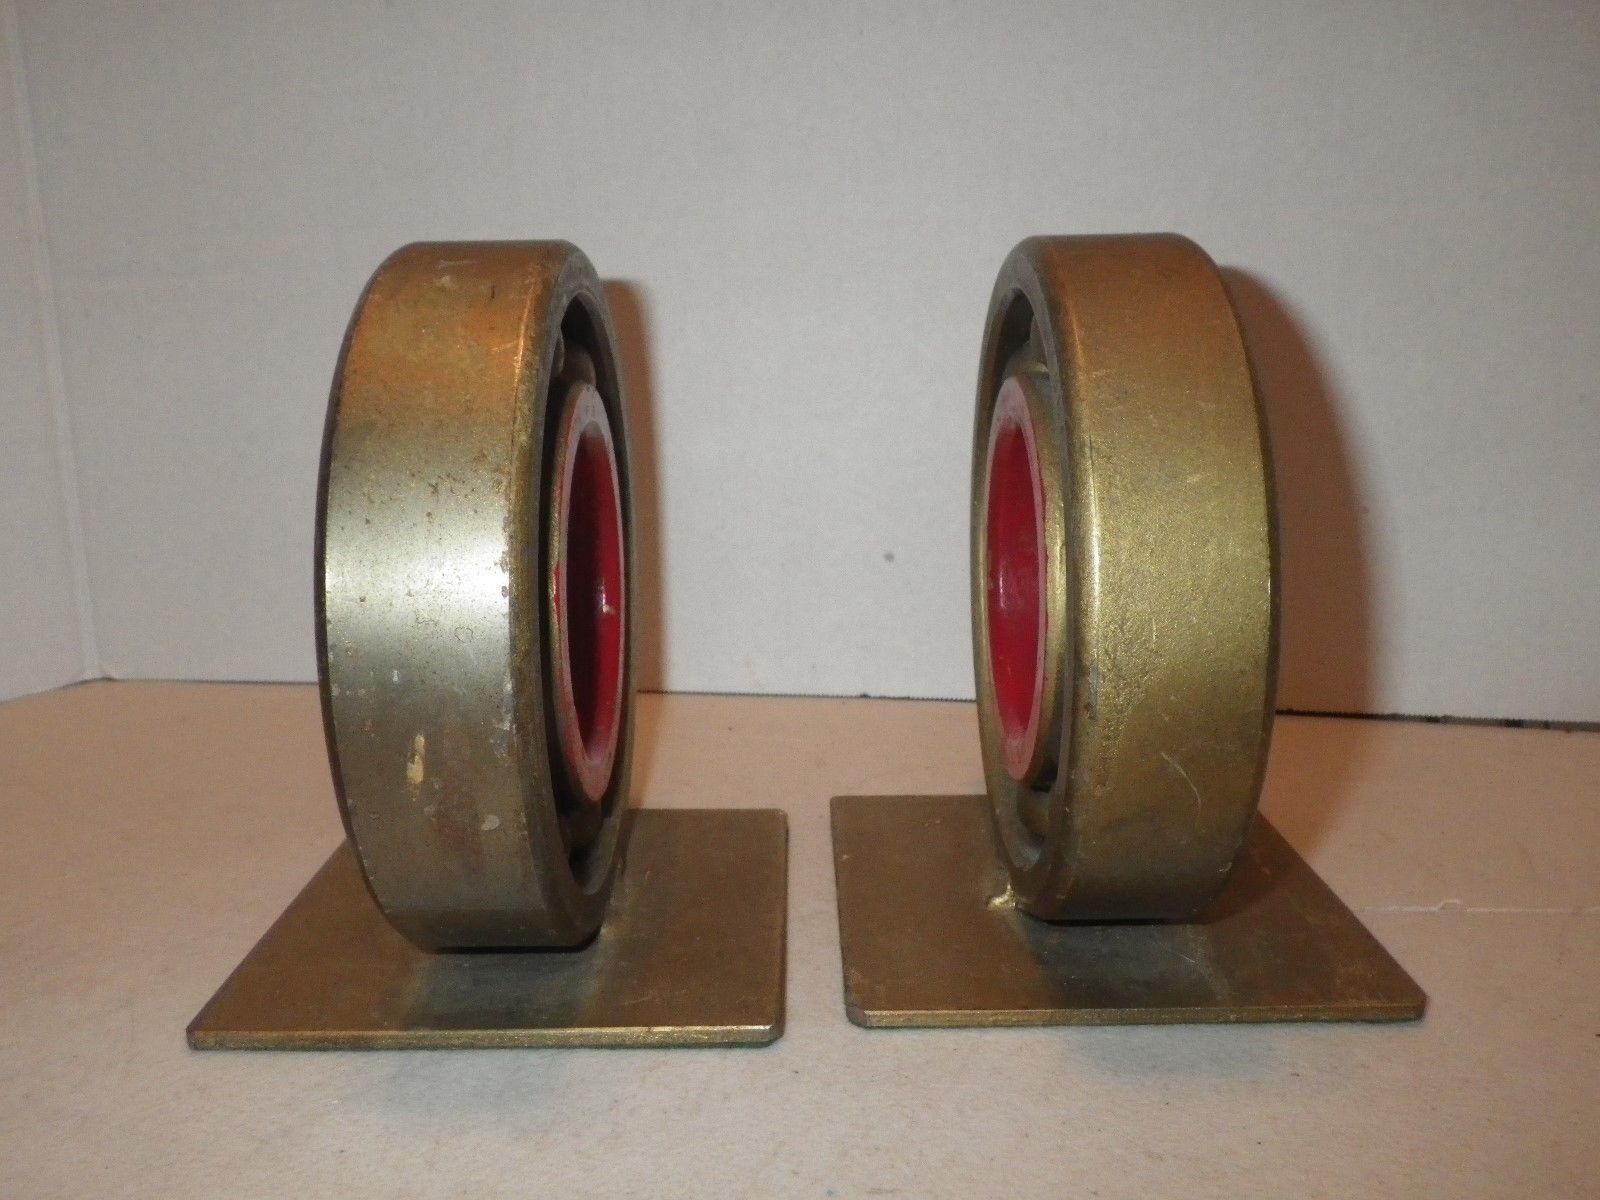 high temperature Large AC SKF Ball Bearing Bookends – Possibly One of a Kind  – Man Cave Item